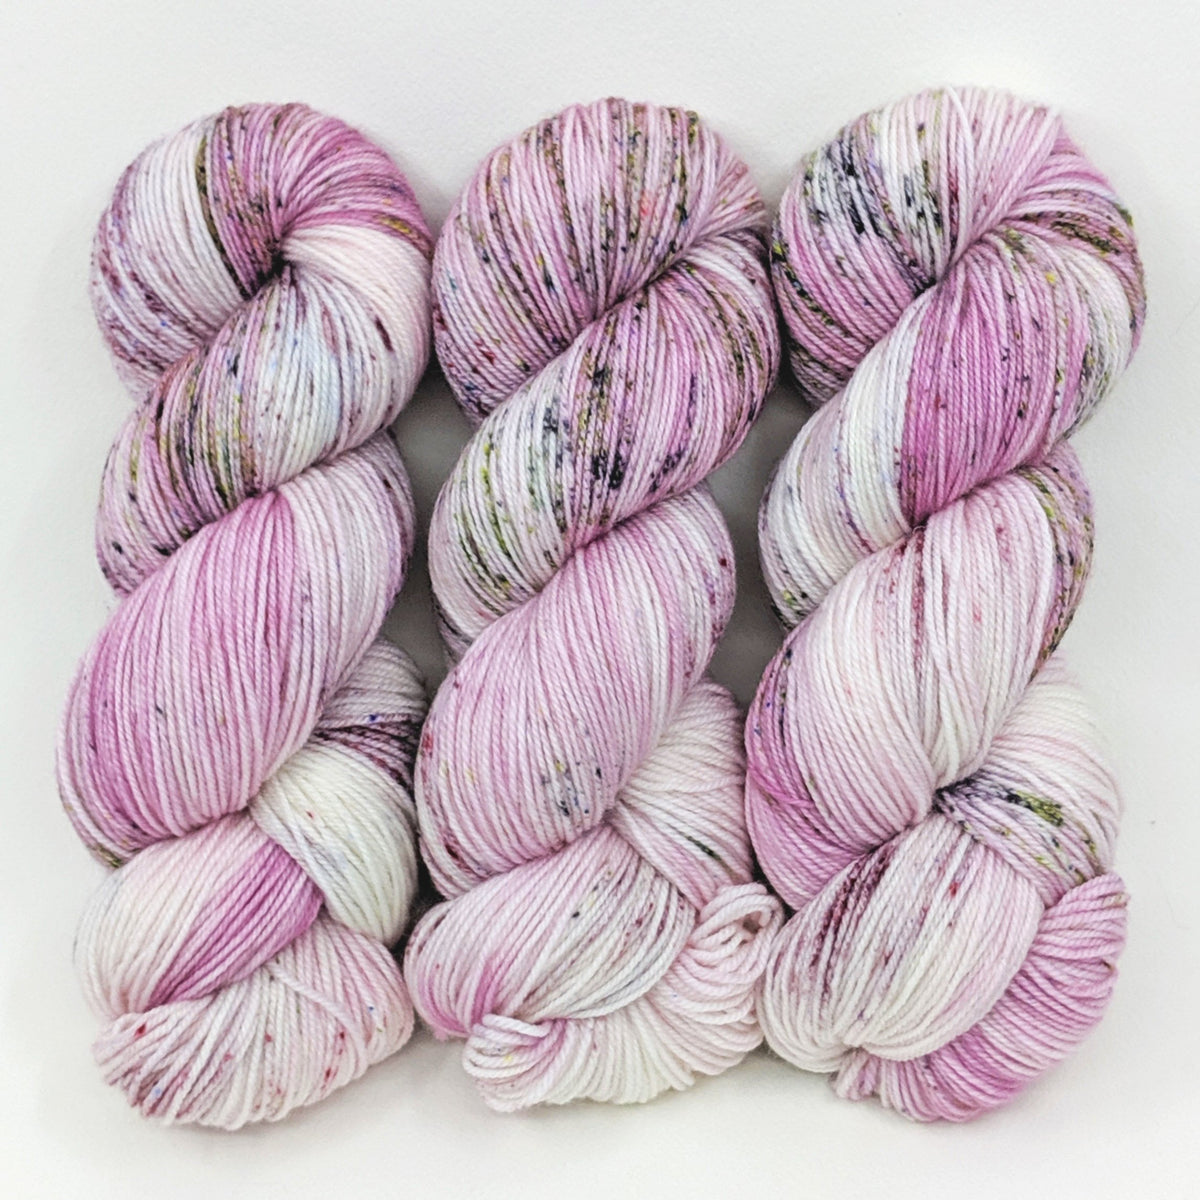 Tiny Orchid in Worsted Weight